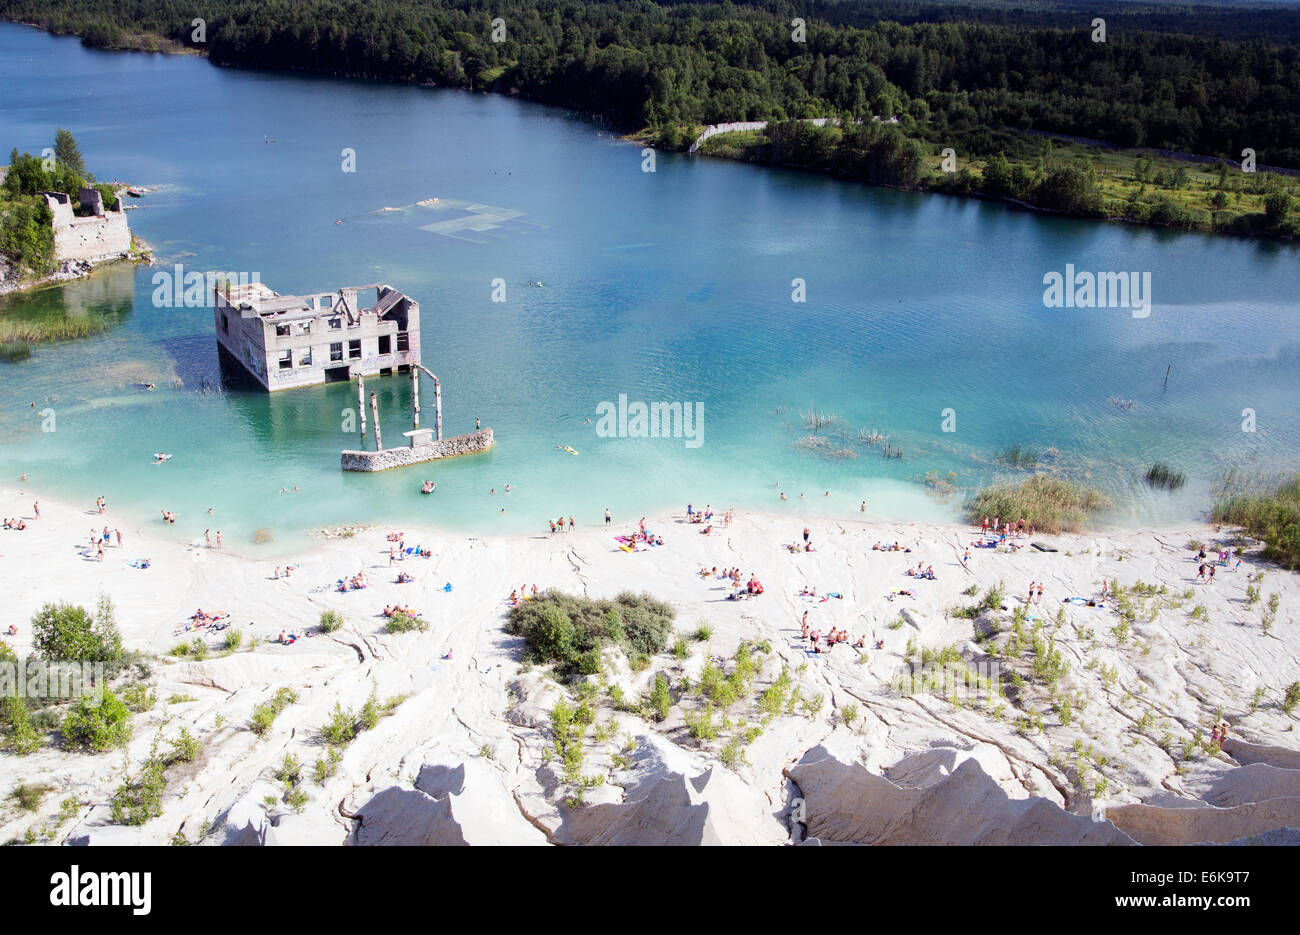 Abandoned open cast mine as popular swimming place - Stock Image